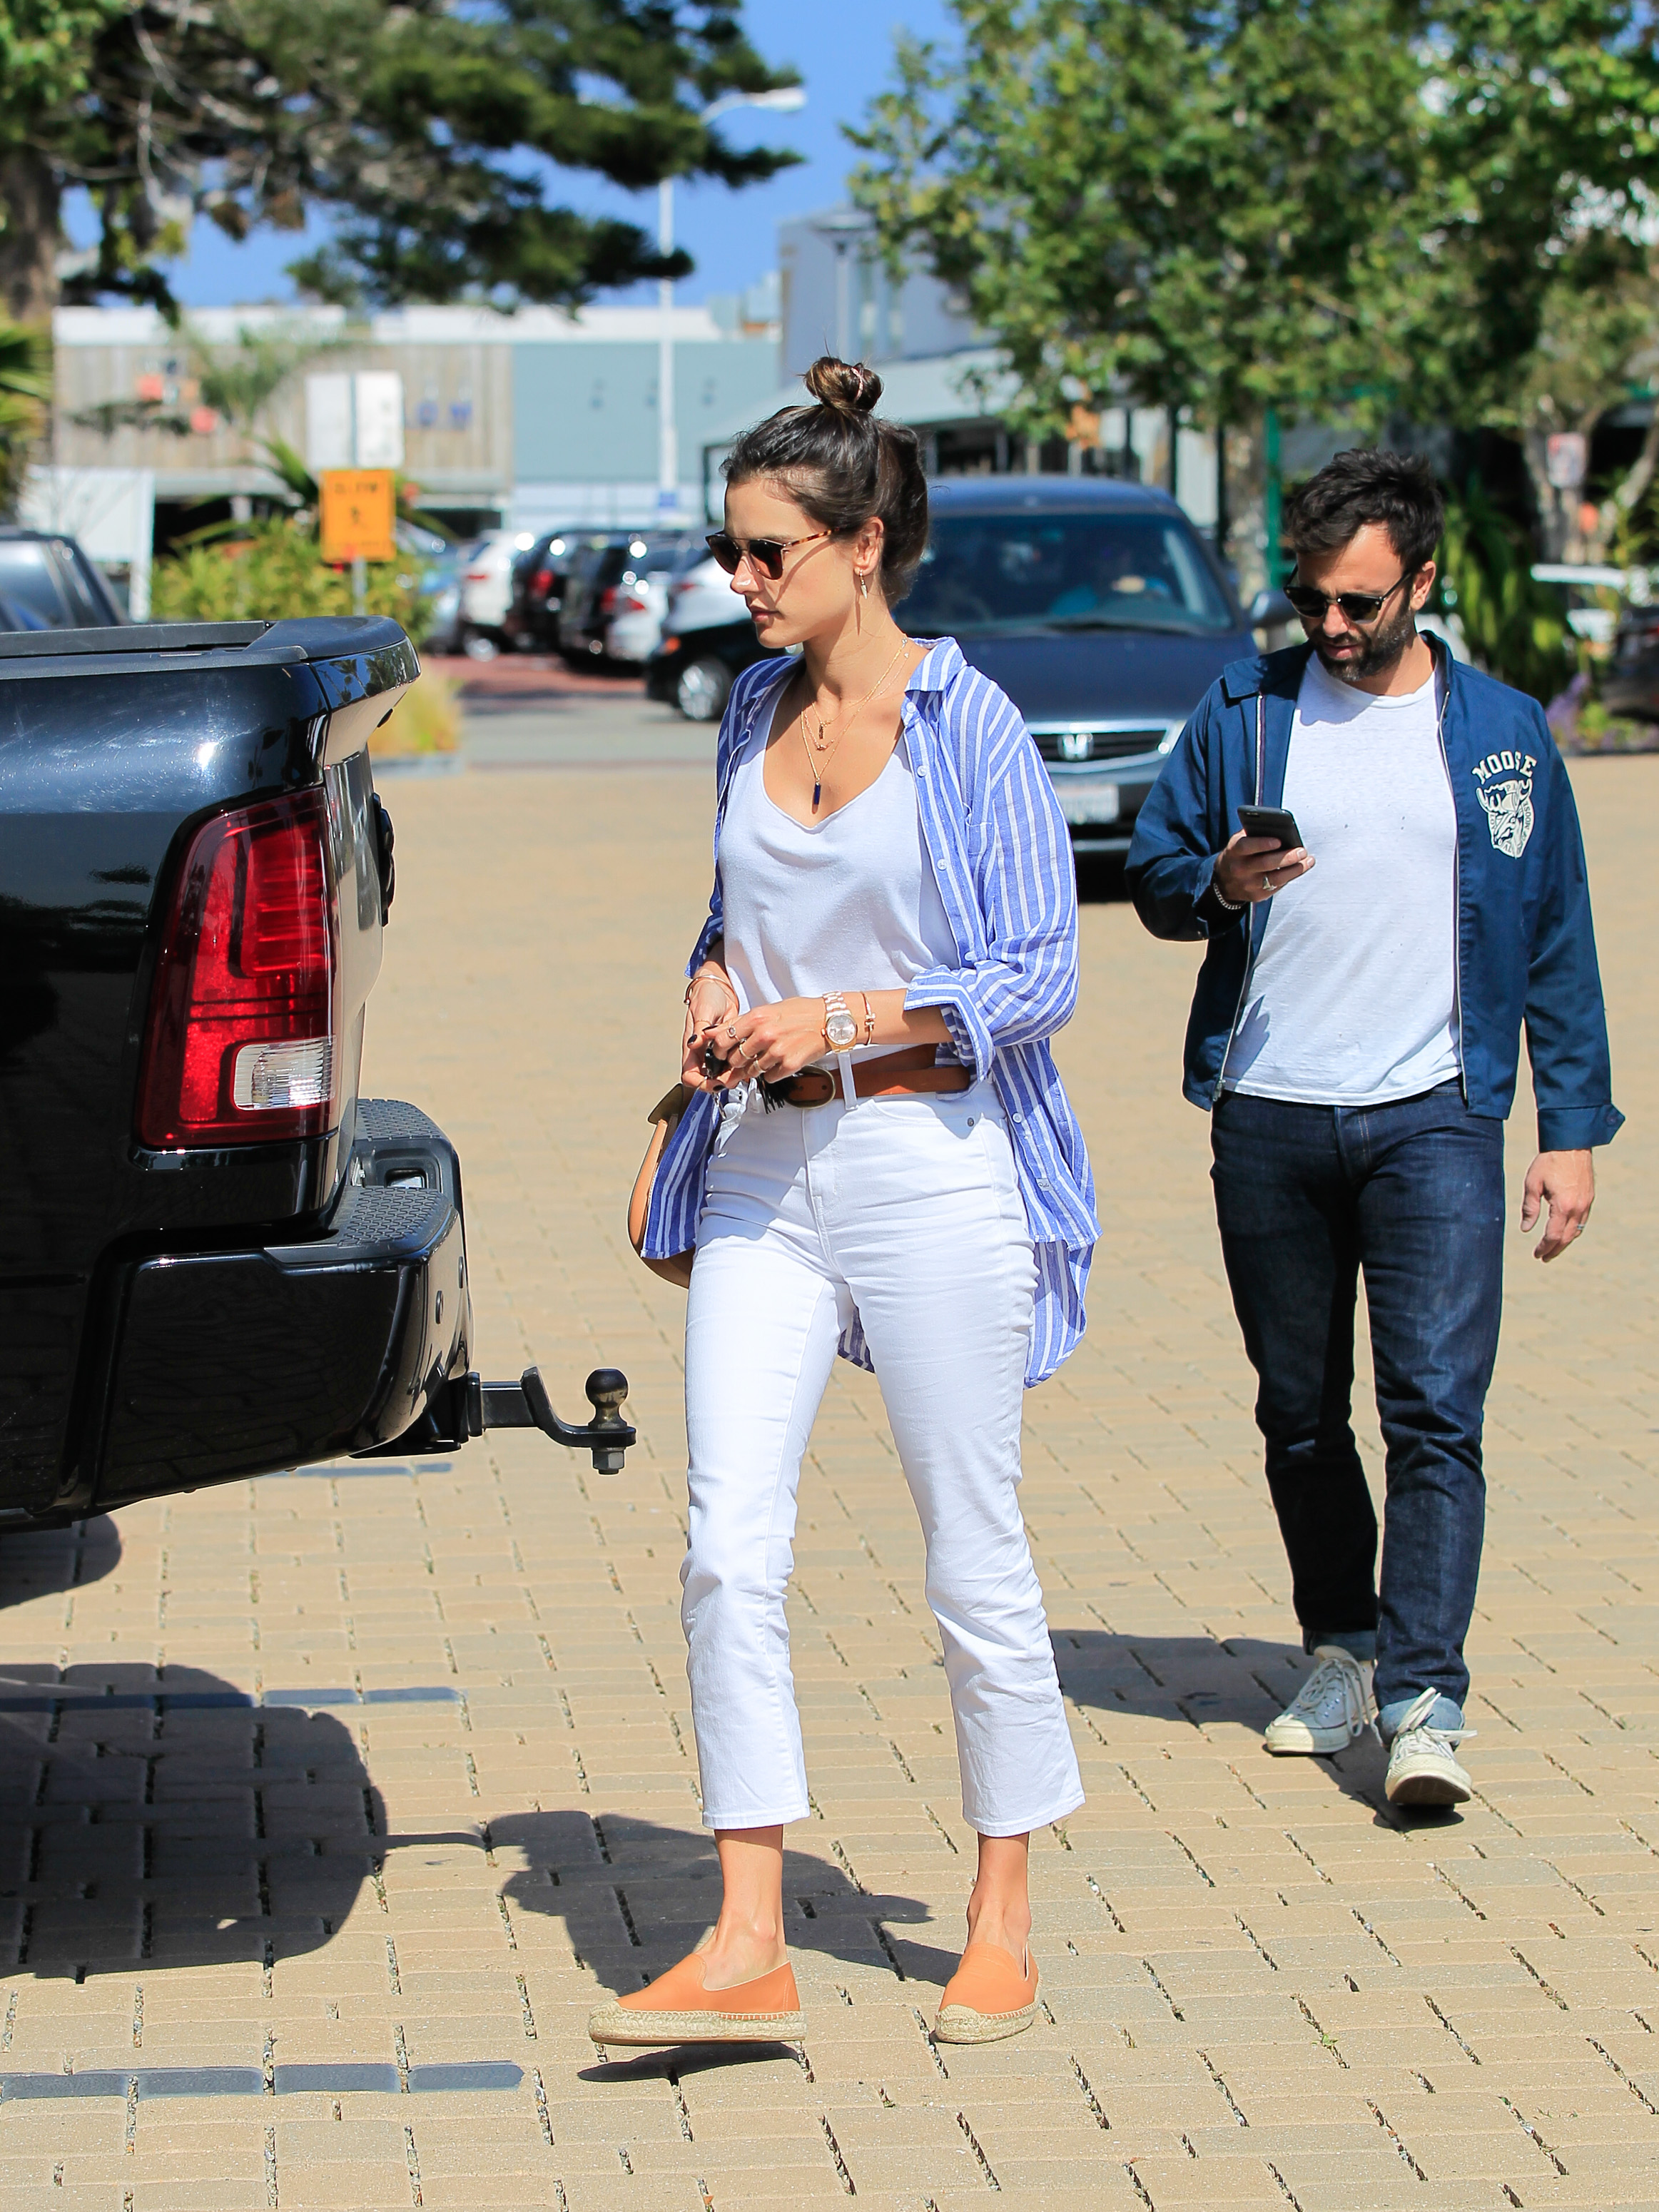 Alessandra Ambrosio and Jamie Mazur are seen in Los Angeles, California. <P> Pictured: Alessandra Ambrosio, Jamie Mazur <B>Ref: SPL1282779  140516  </B><BR/> Picture by: Bauer-Griffin/Bauergriffin.com<BR/> </P><P>